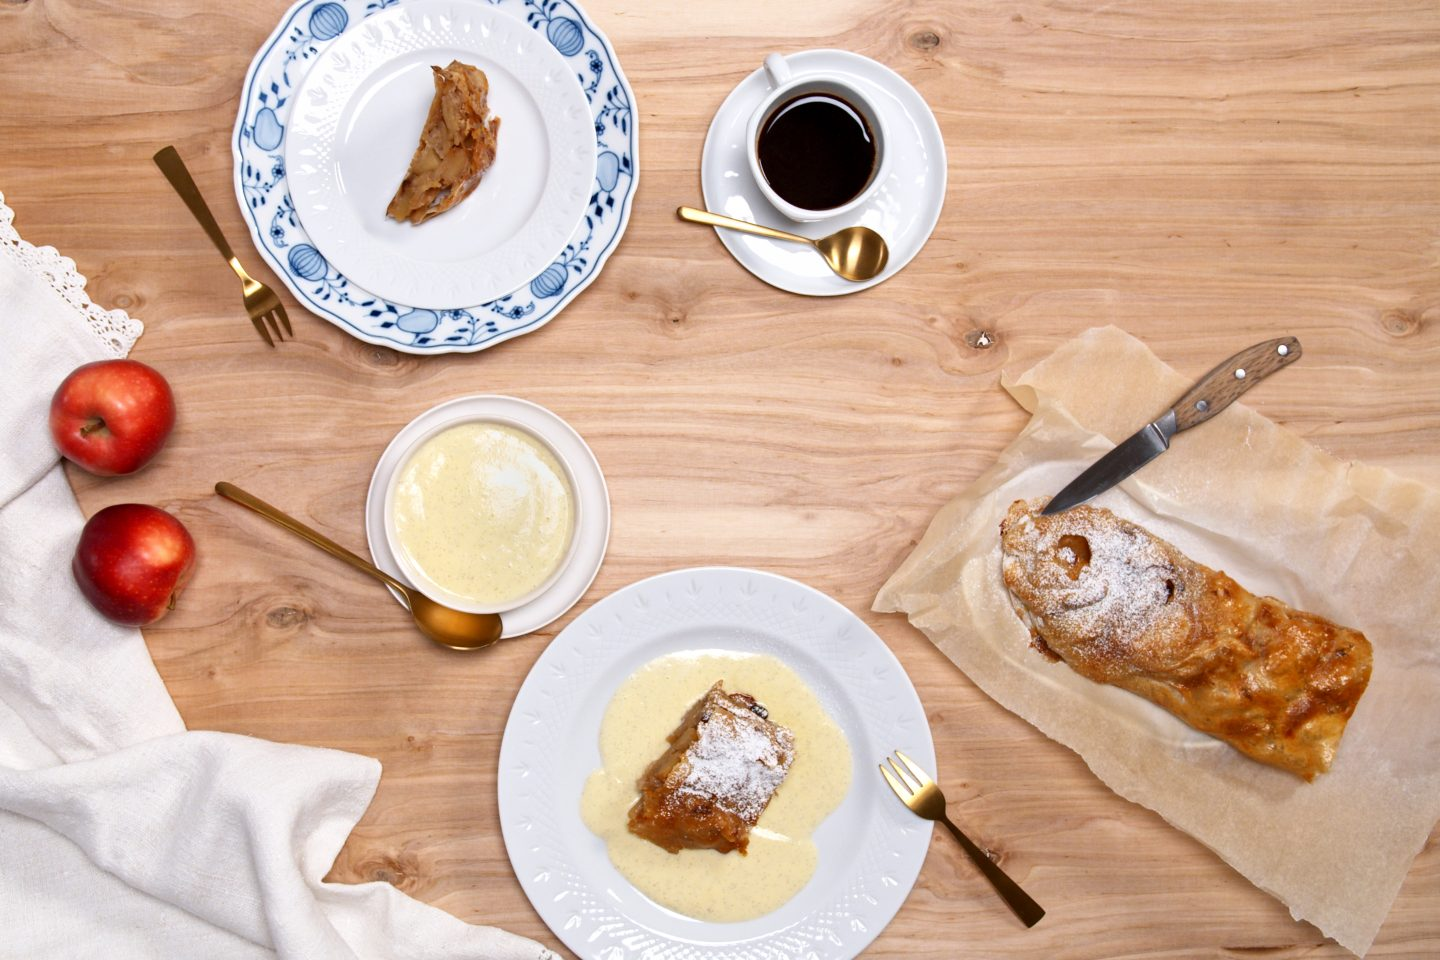 Apple strudel With vanilla sauce on 2 plates, served with coffee and the remaining apple strudel on baking paper